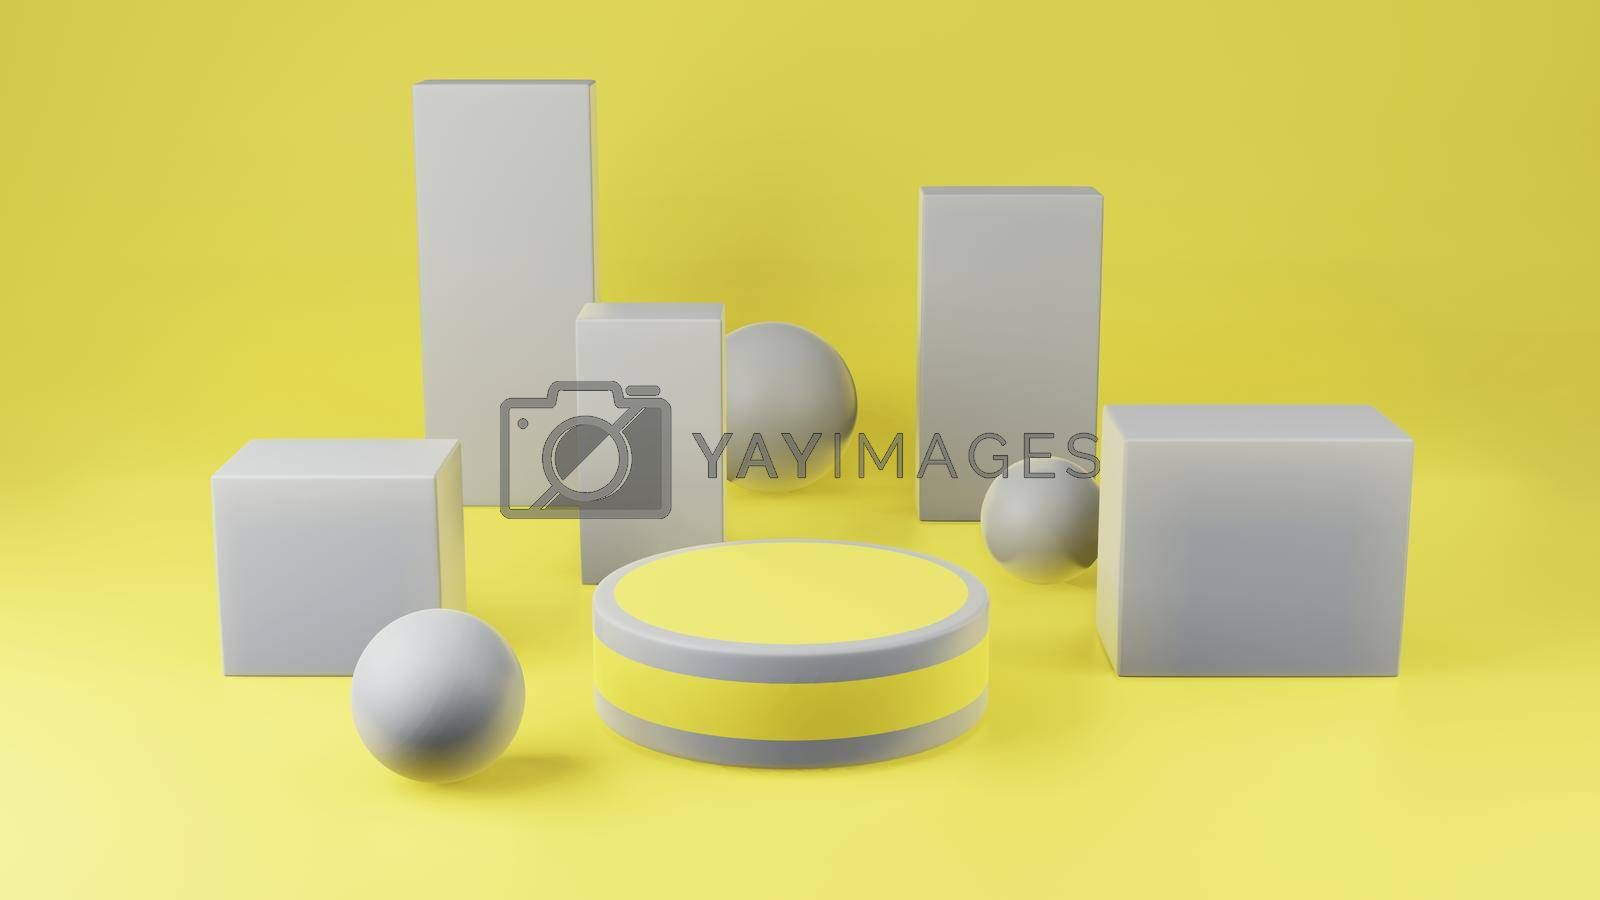 Royalty free image of Yellow cylinder podium with gray girdle on yellow background by eaglesky